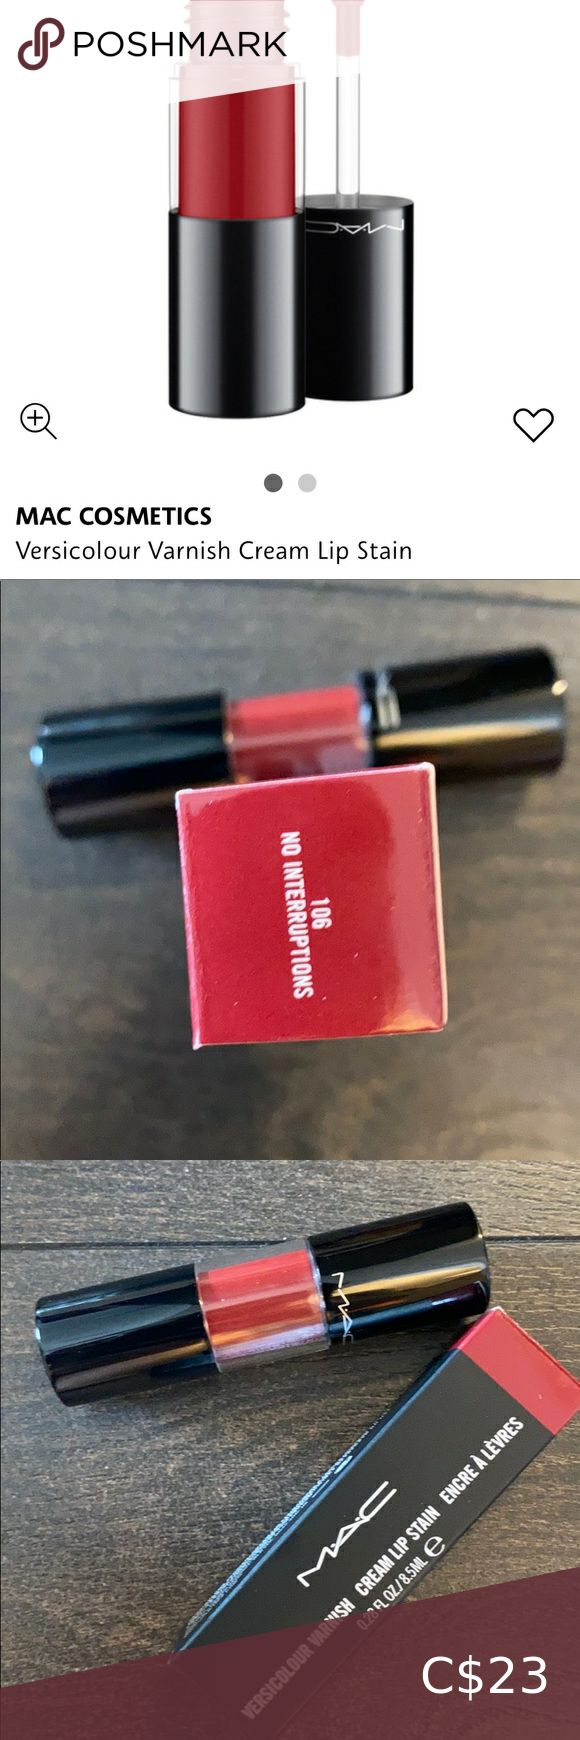 Versicolour varnish cream lip stain in 2020 Cream lip